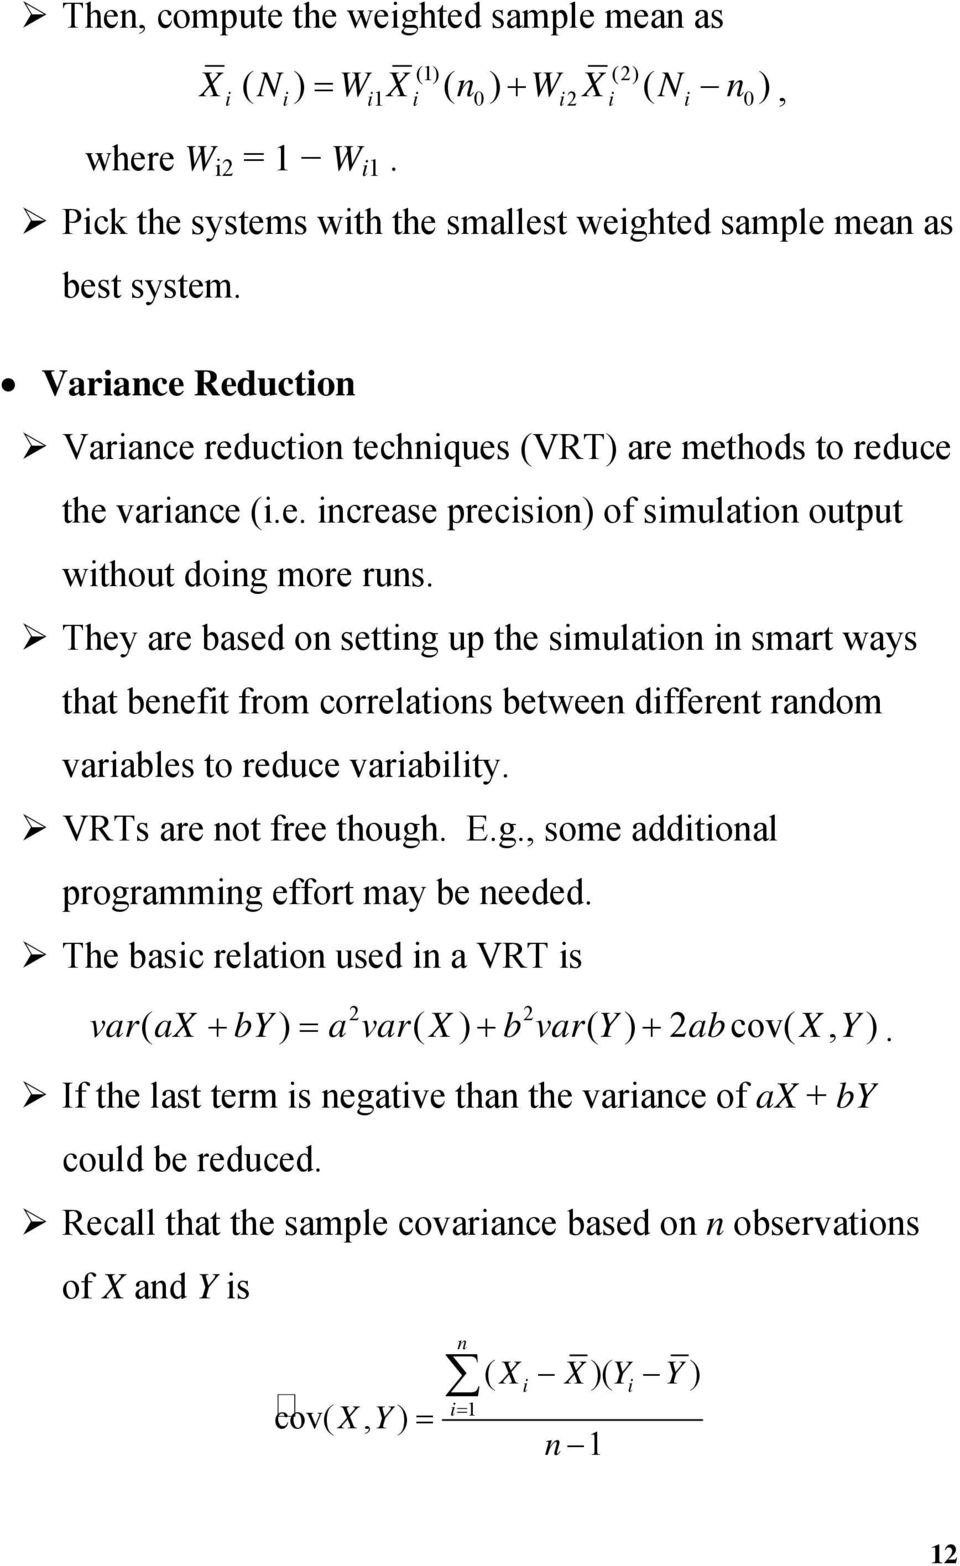 They are based o settig up the simulatio i smart ways that beefit from correlatios betwee differet radom variables to reduce variability. VRTs are ot free though. E.g., some additioal programmig effort may be eeded.